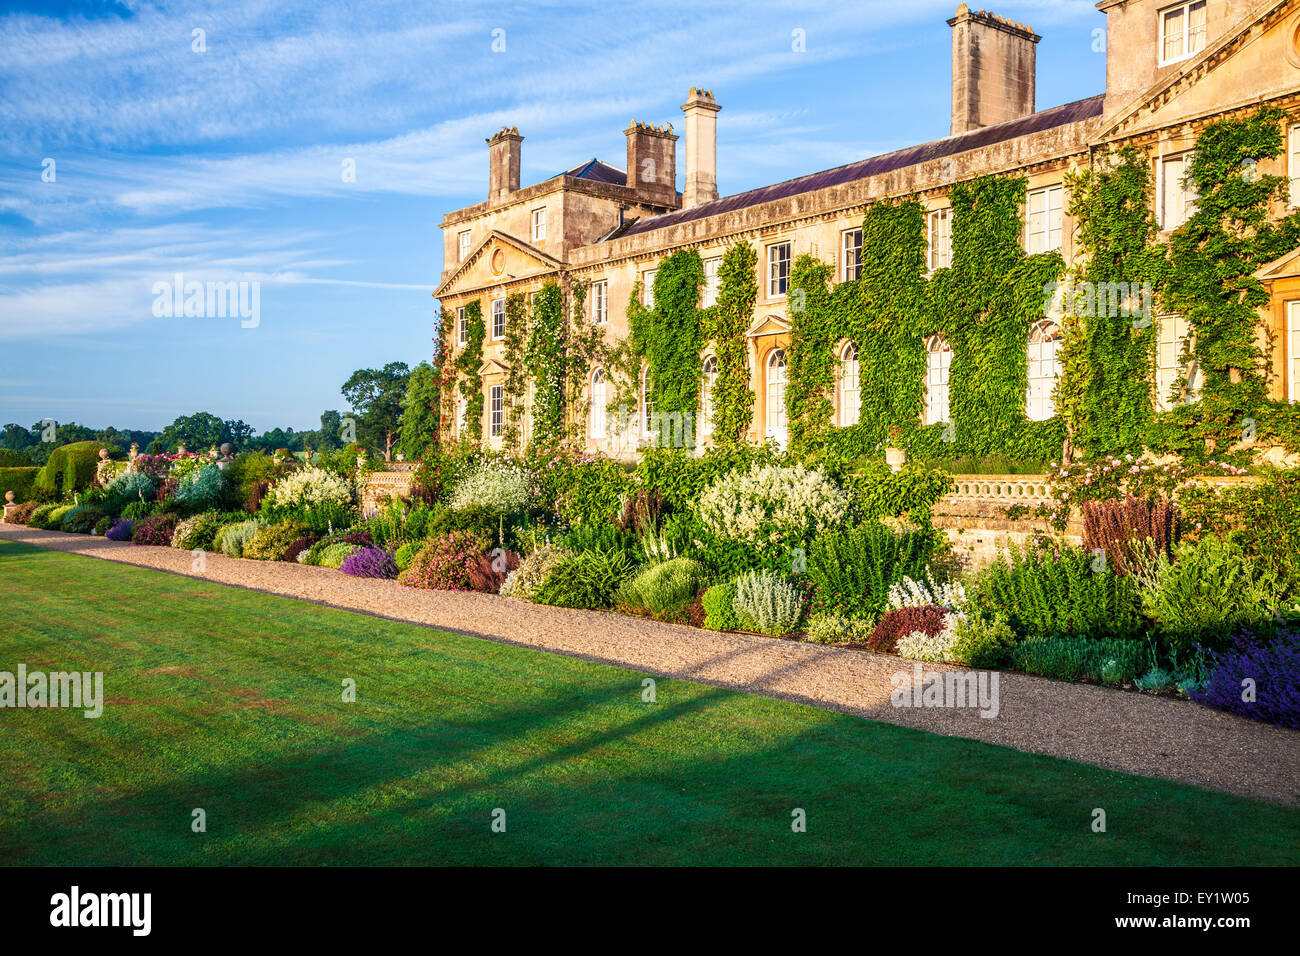 Herbaceous border below the terrace of Bowood House in Wiltshire. - Stock Image